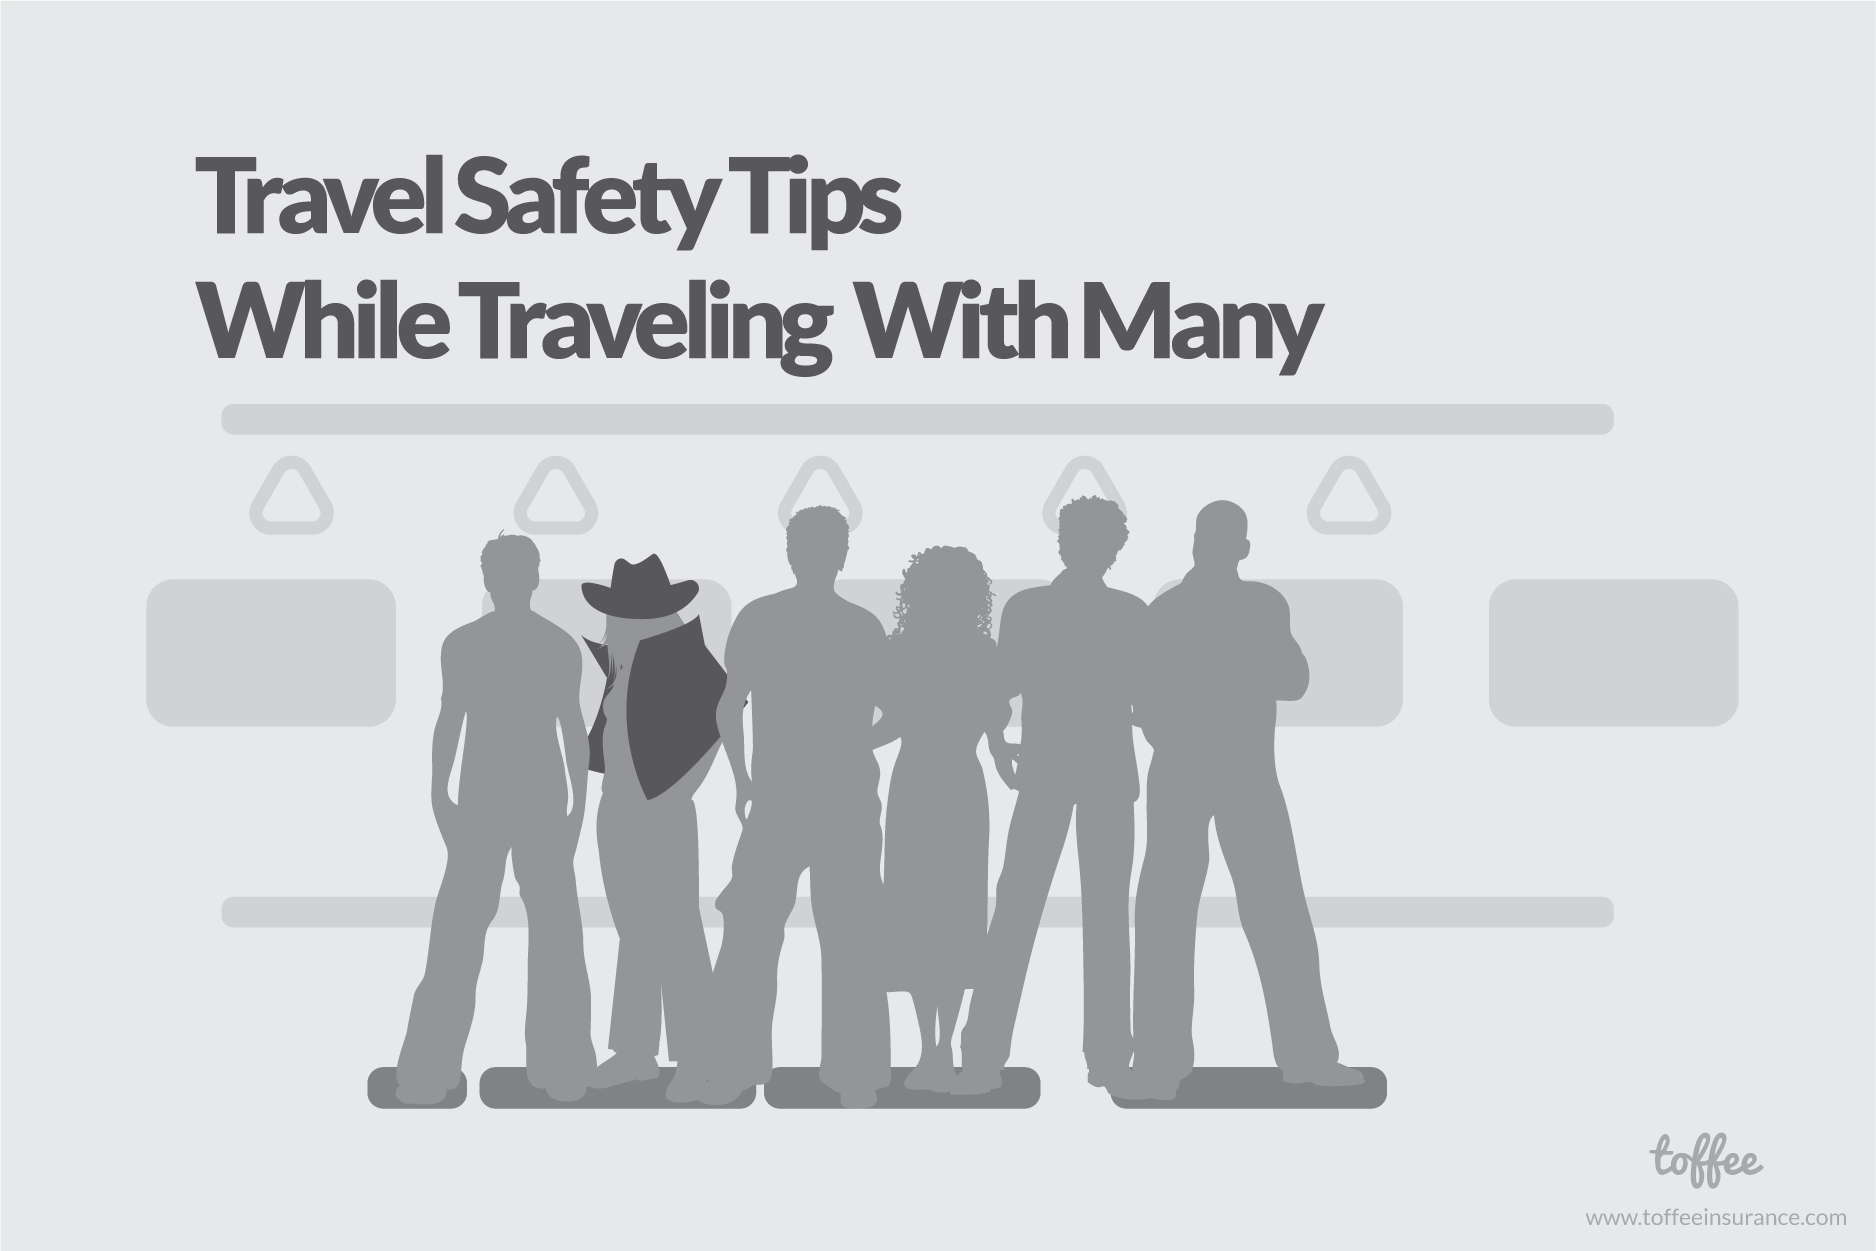 Safety Travel Tips While Using Public Transport